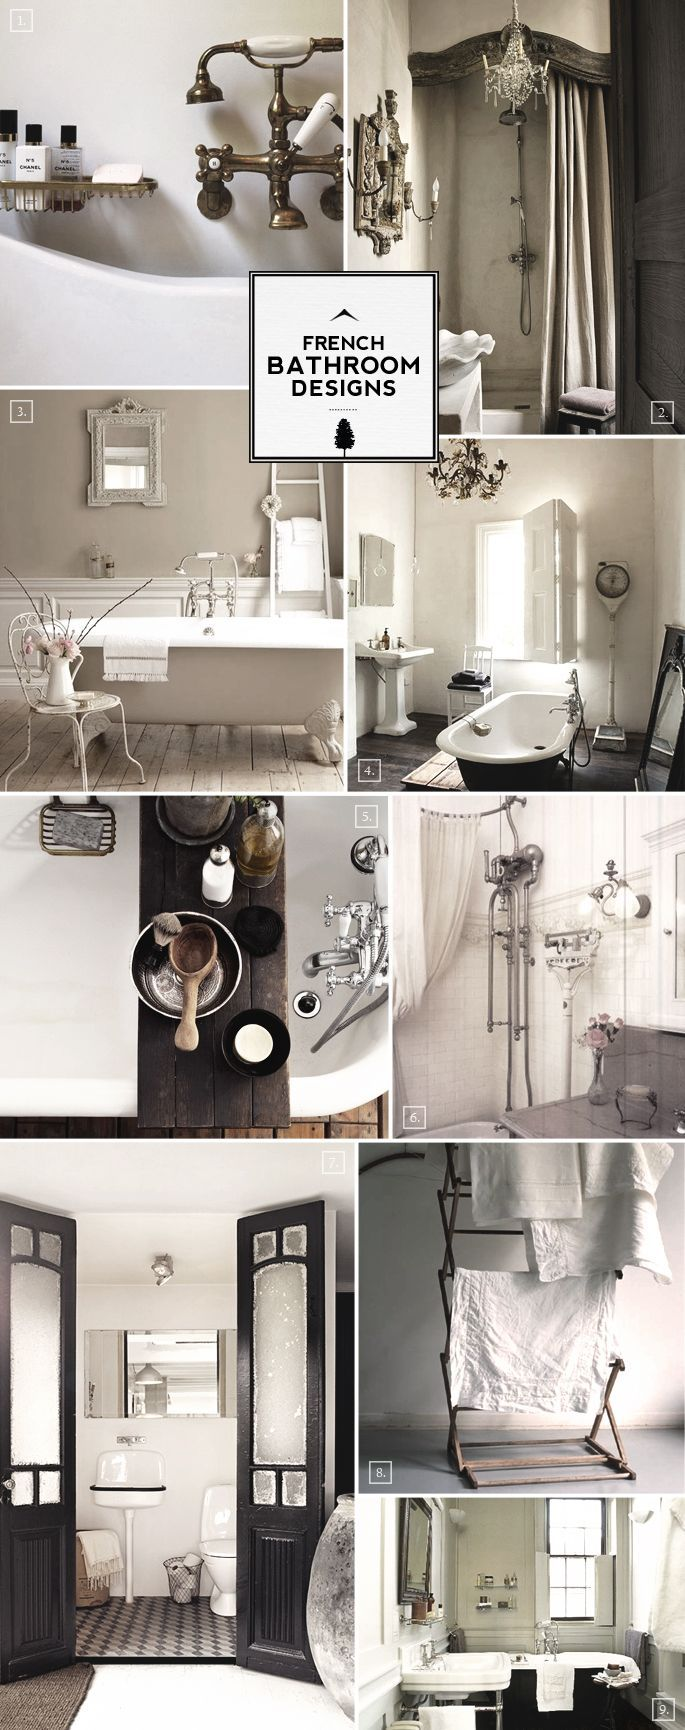 French country bathroom accessories - French Bathroom Decor The Design Elements That Will Make Up French Bathroom Decor Are Porcelain